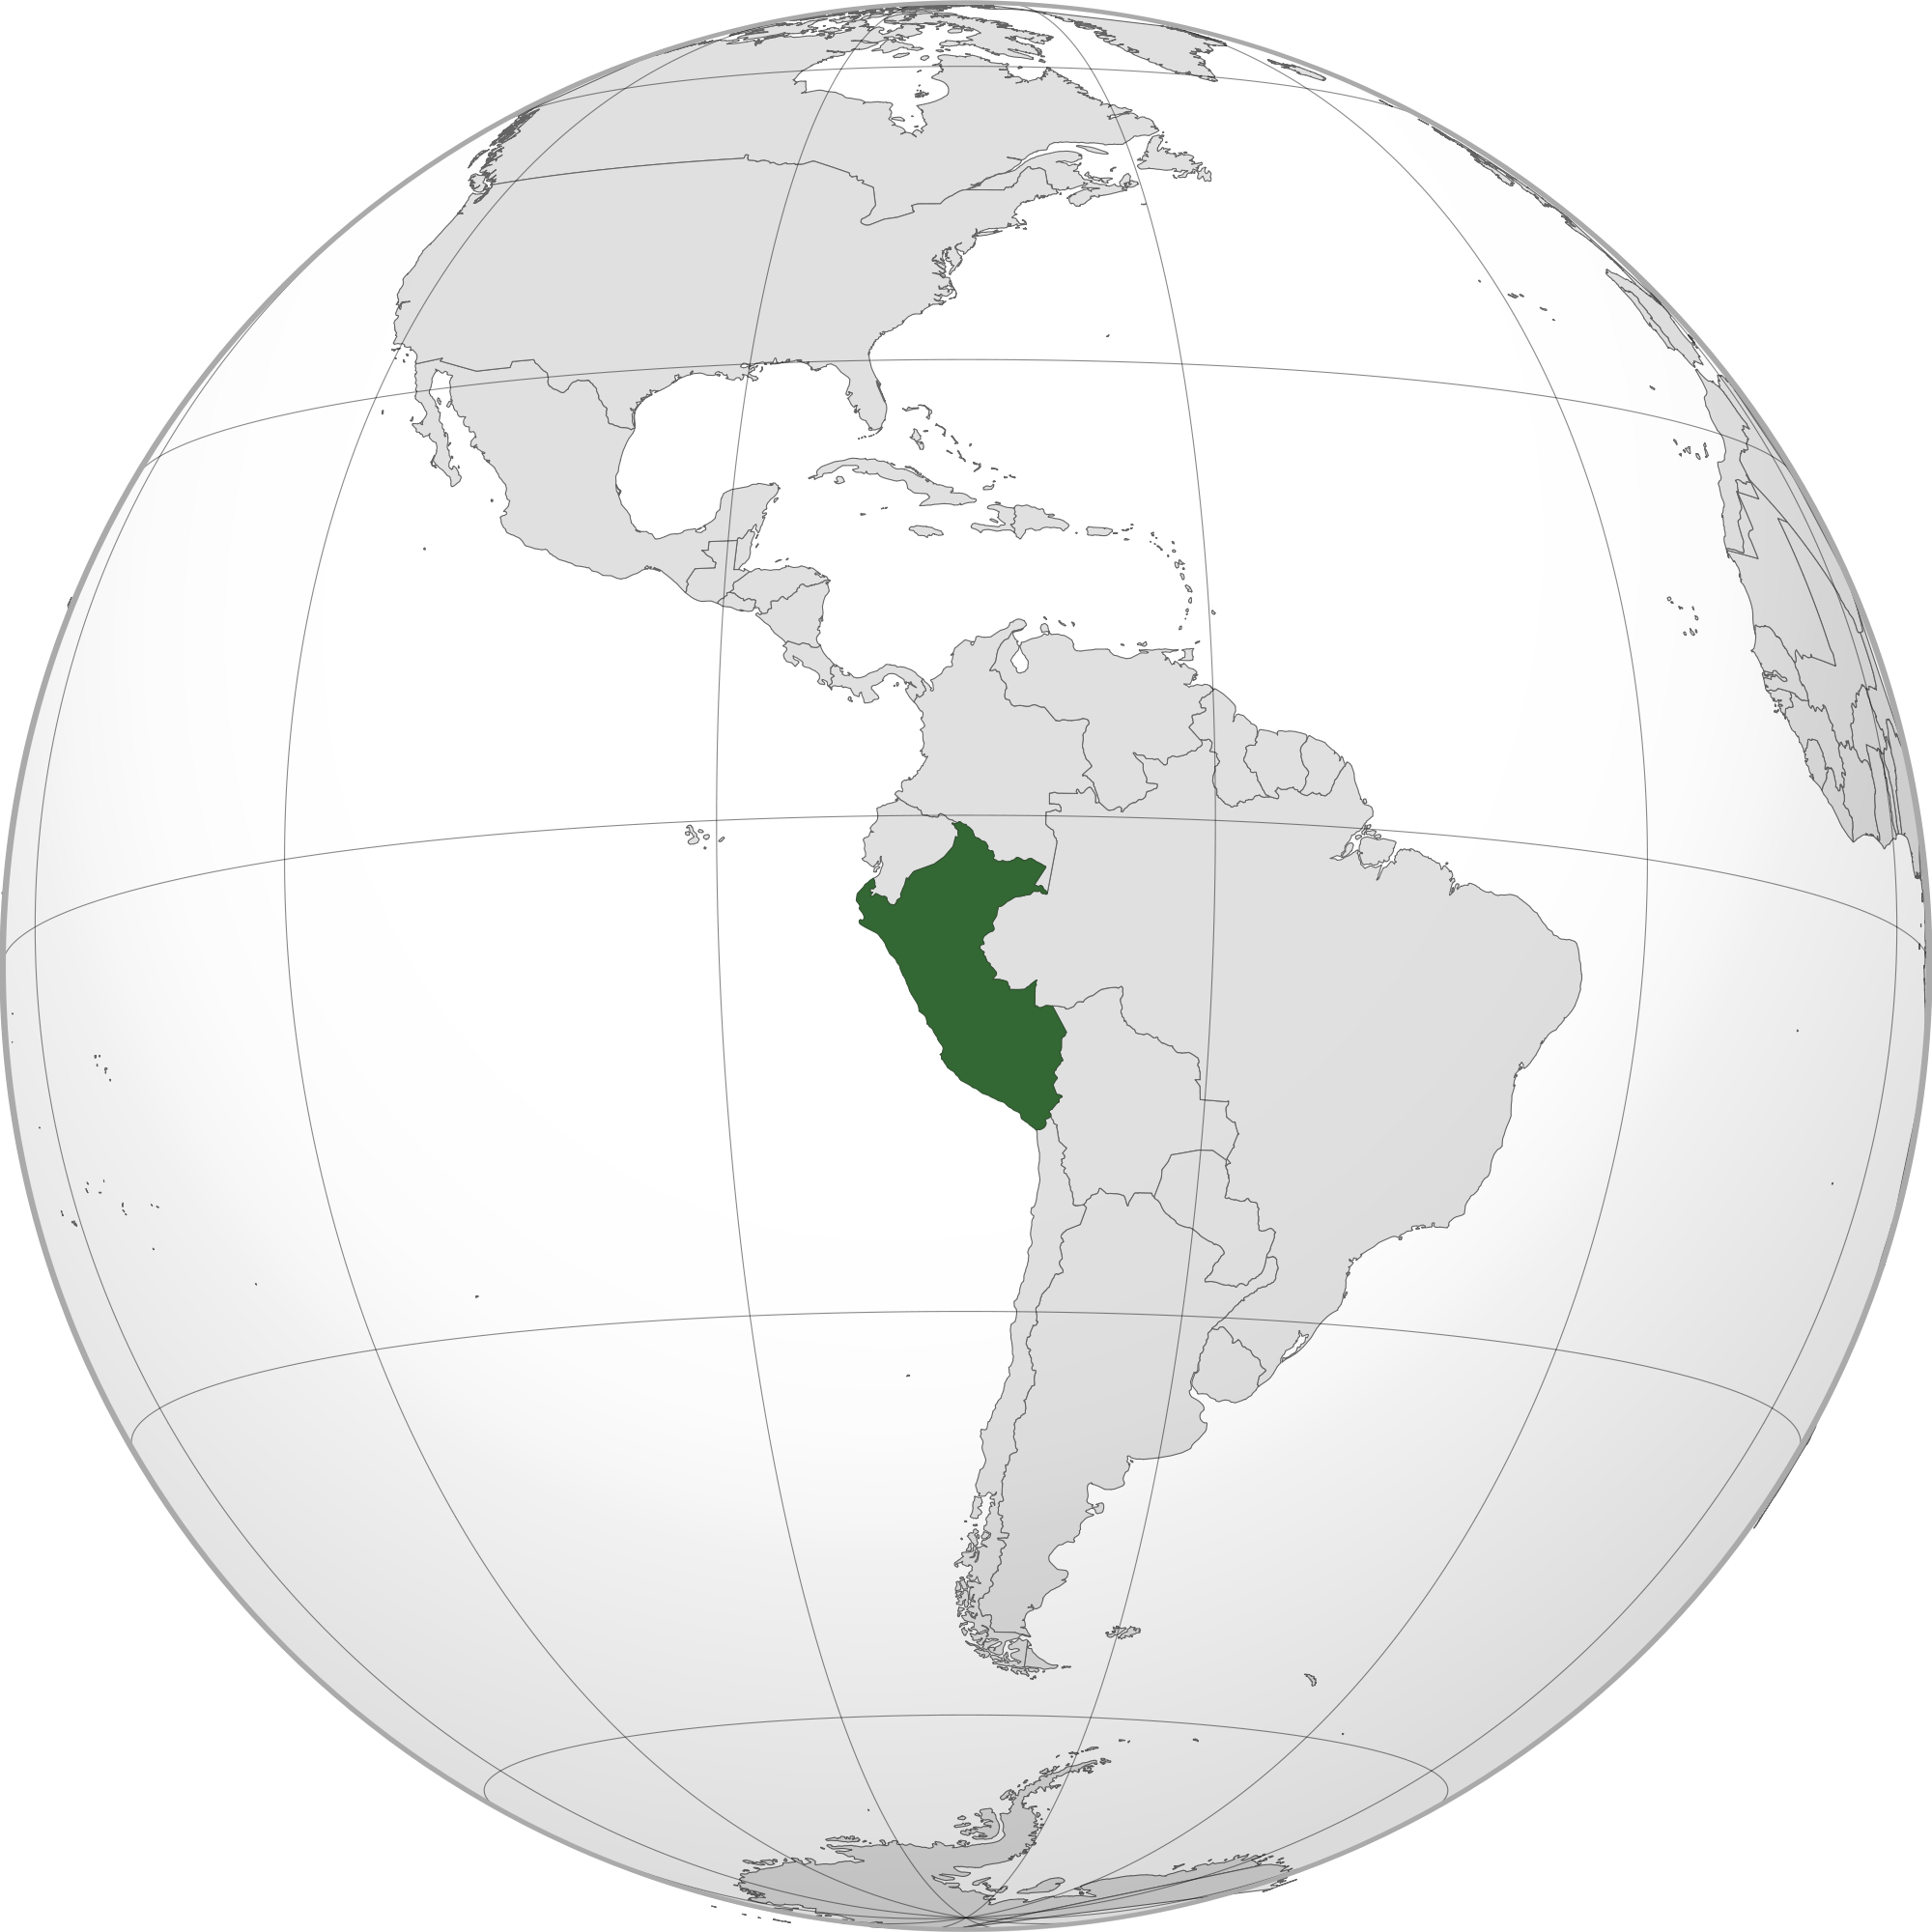 Location of the peru in the World Map